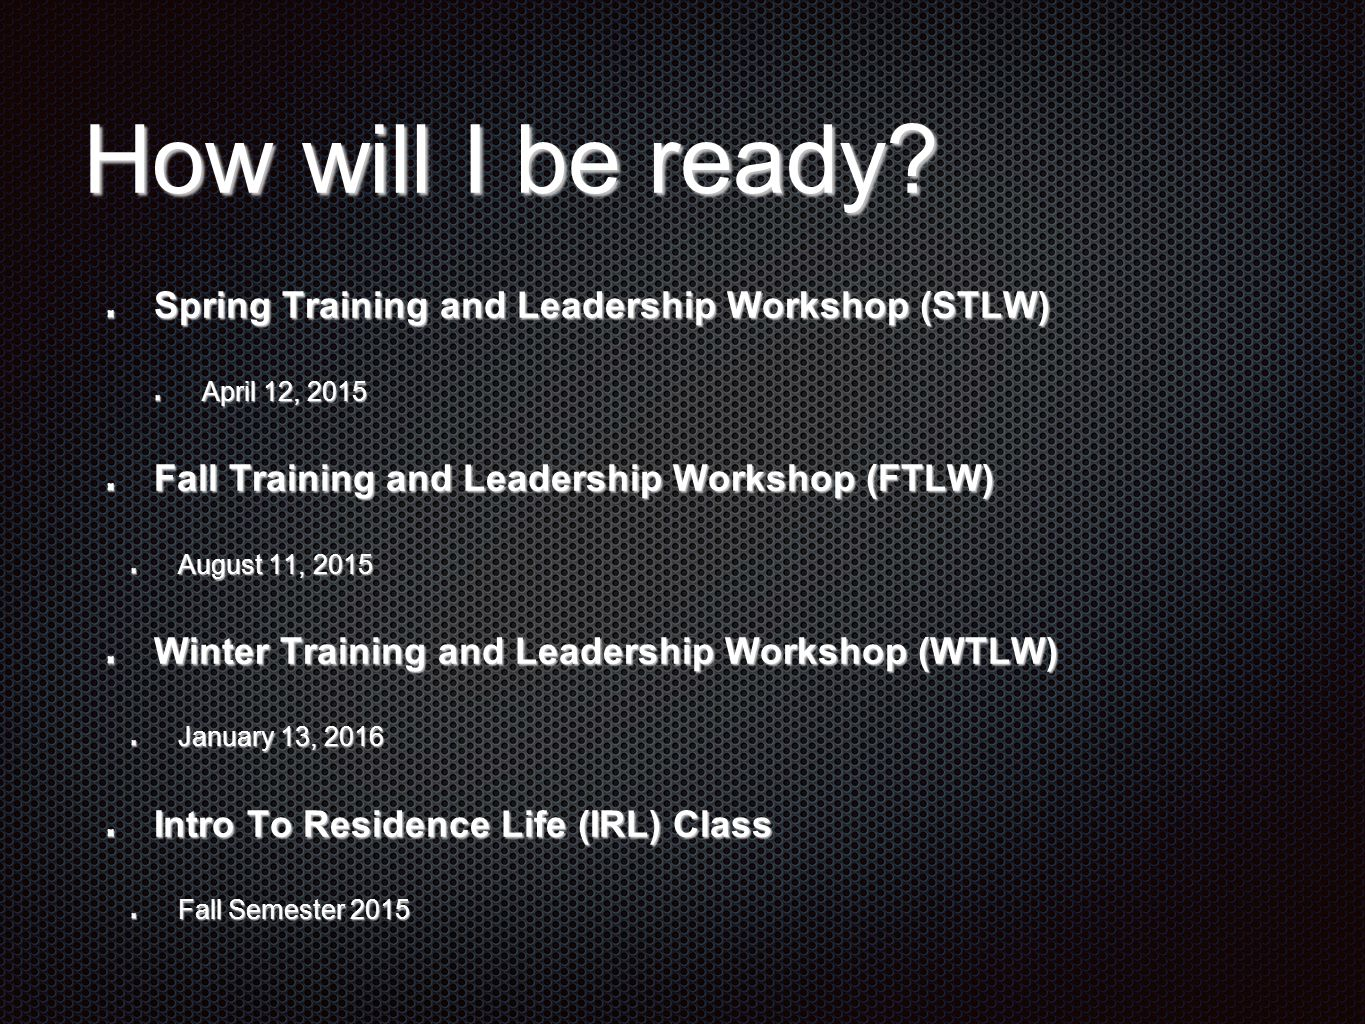 How will I be ready? Spring Training and Leadership Workshop (STLW) April 12, 2015 Fall Training and Leadership Workshop (FTLW) August 11, 2015 Winter